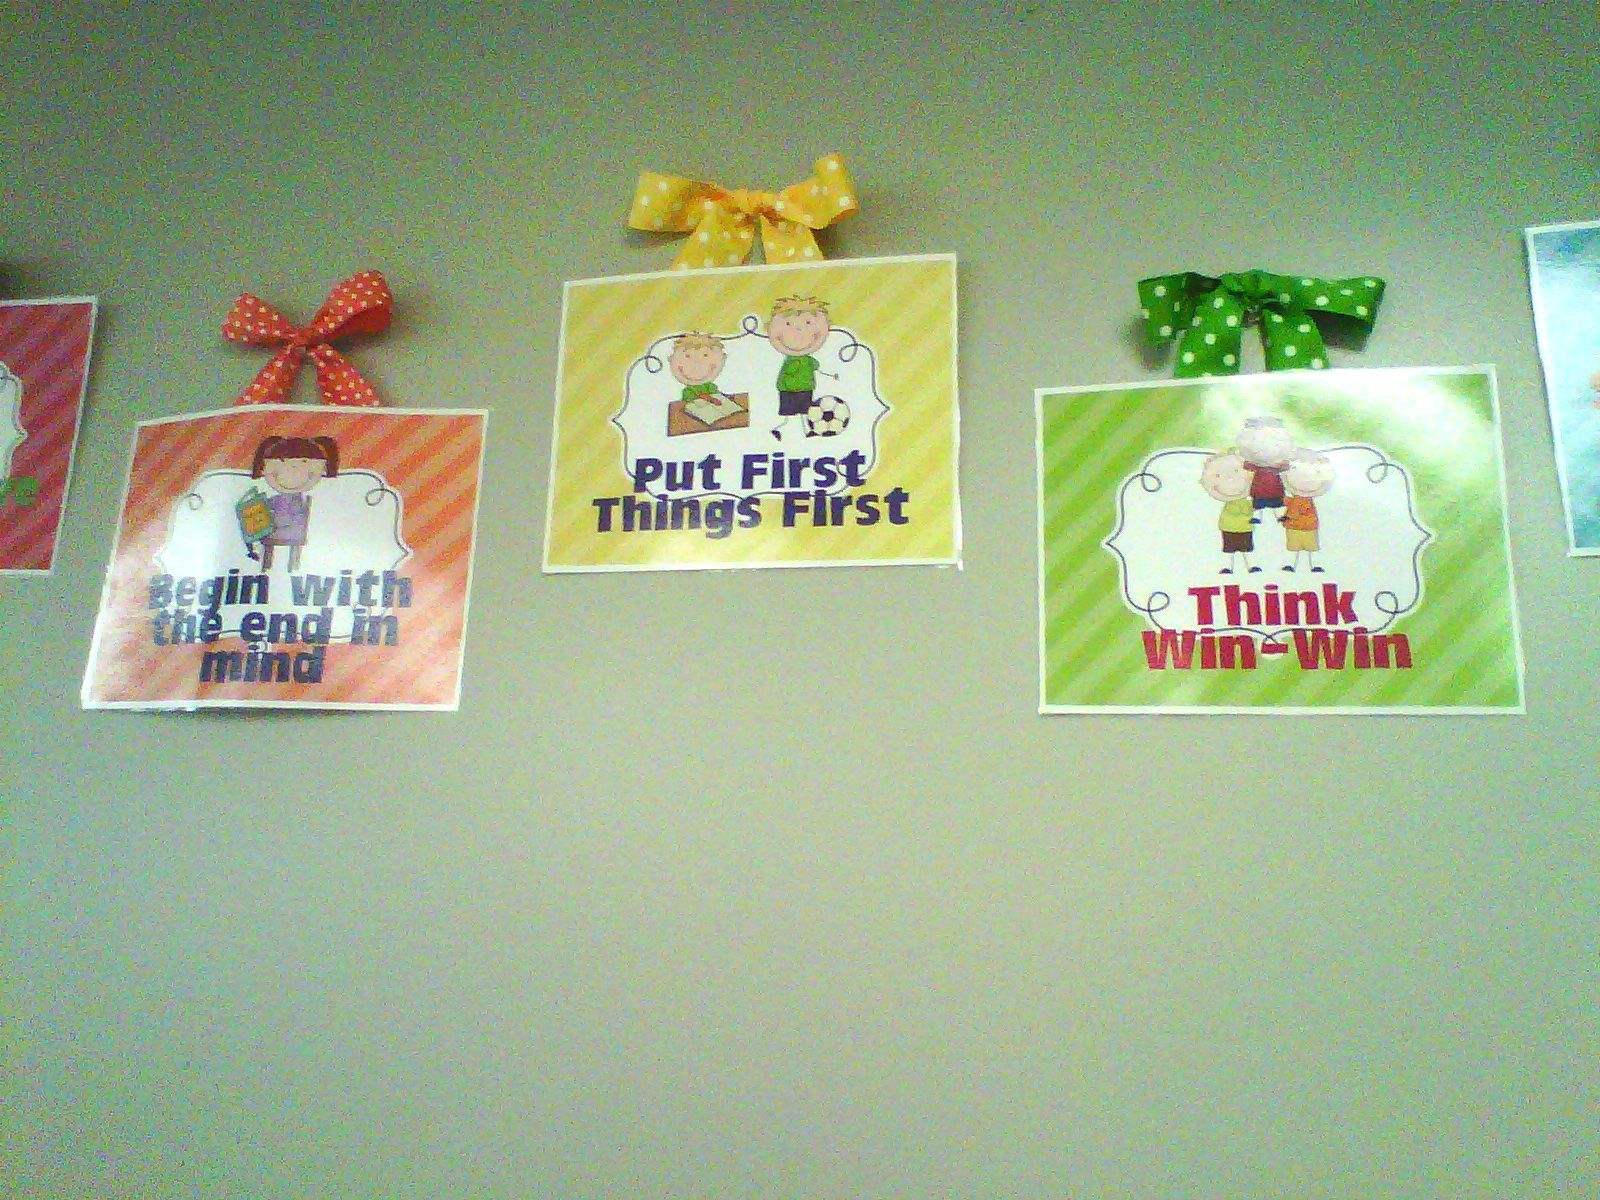 7 Habits Posters Free I Need To Print These For School